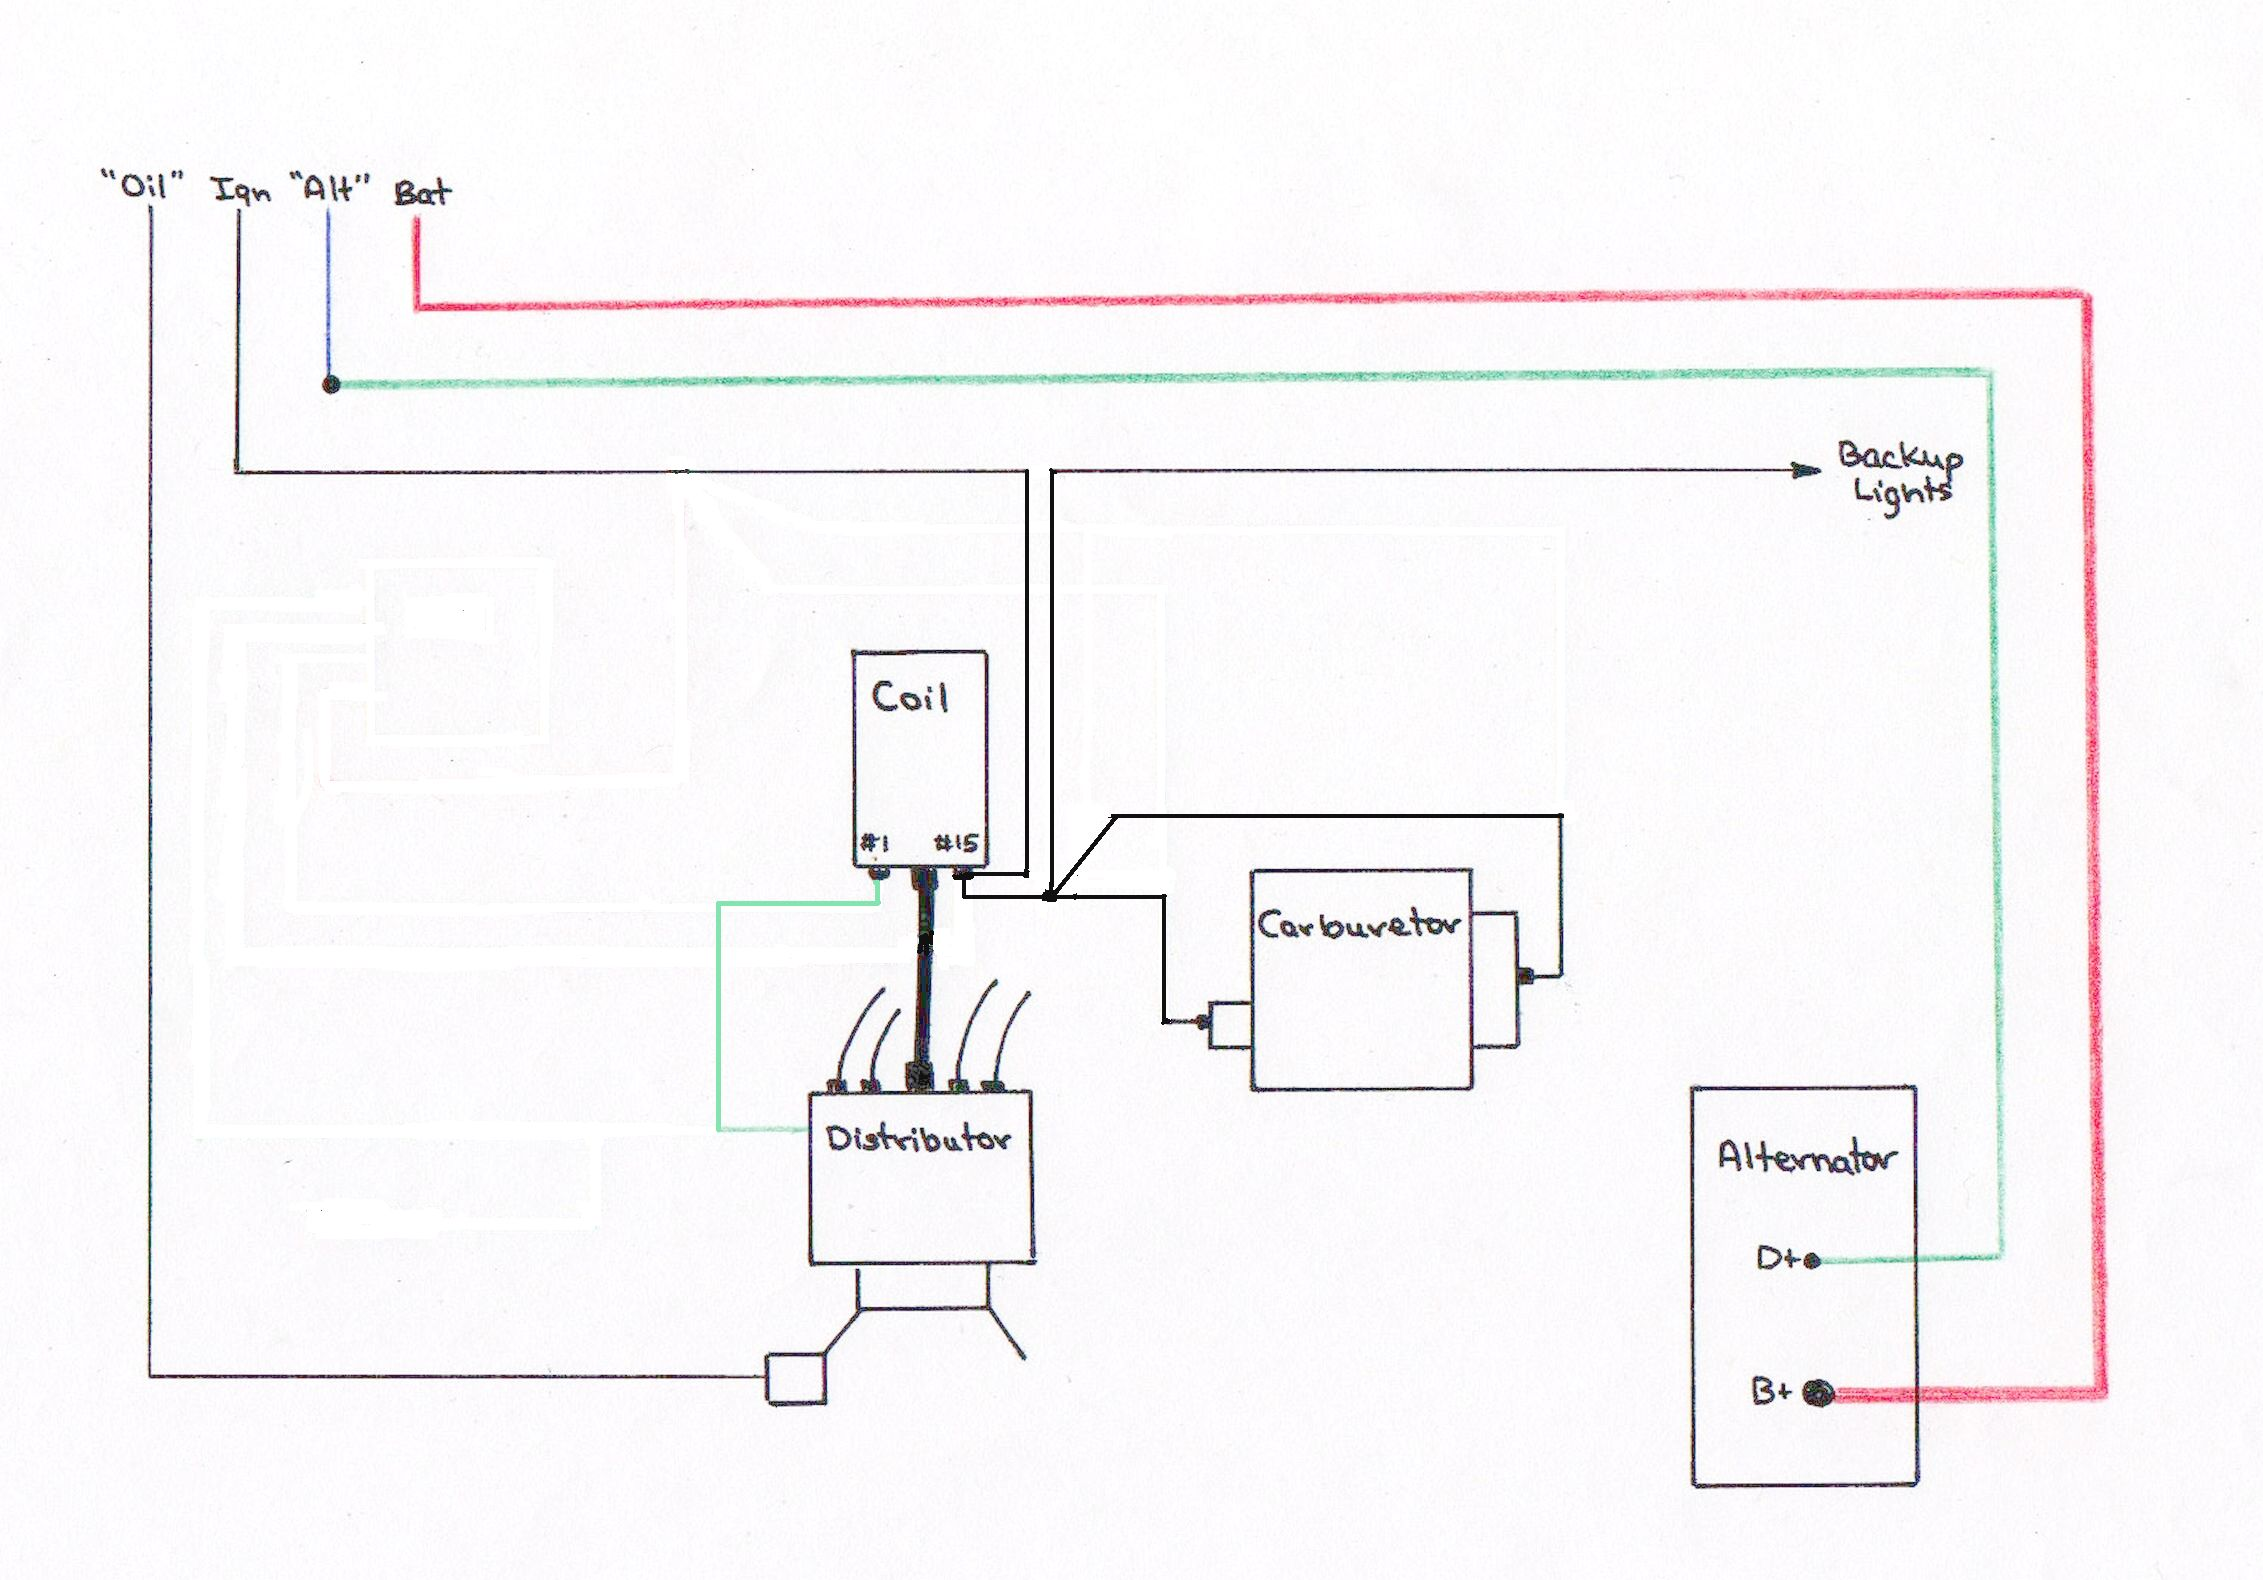 1968 Porsche Alternator Wiring List Of Schematic Circuit Diagram For A 92 Mercury Grand Marquis Rh Vw Resource Com